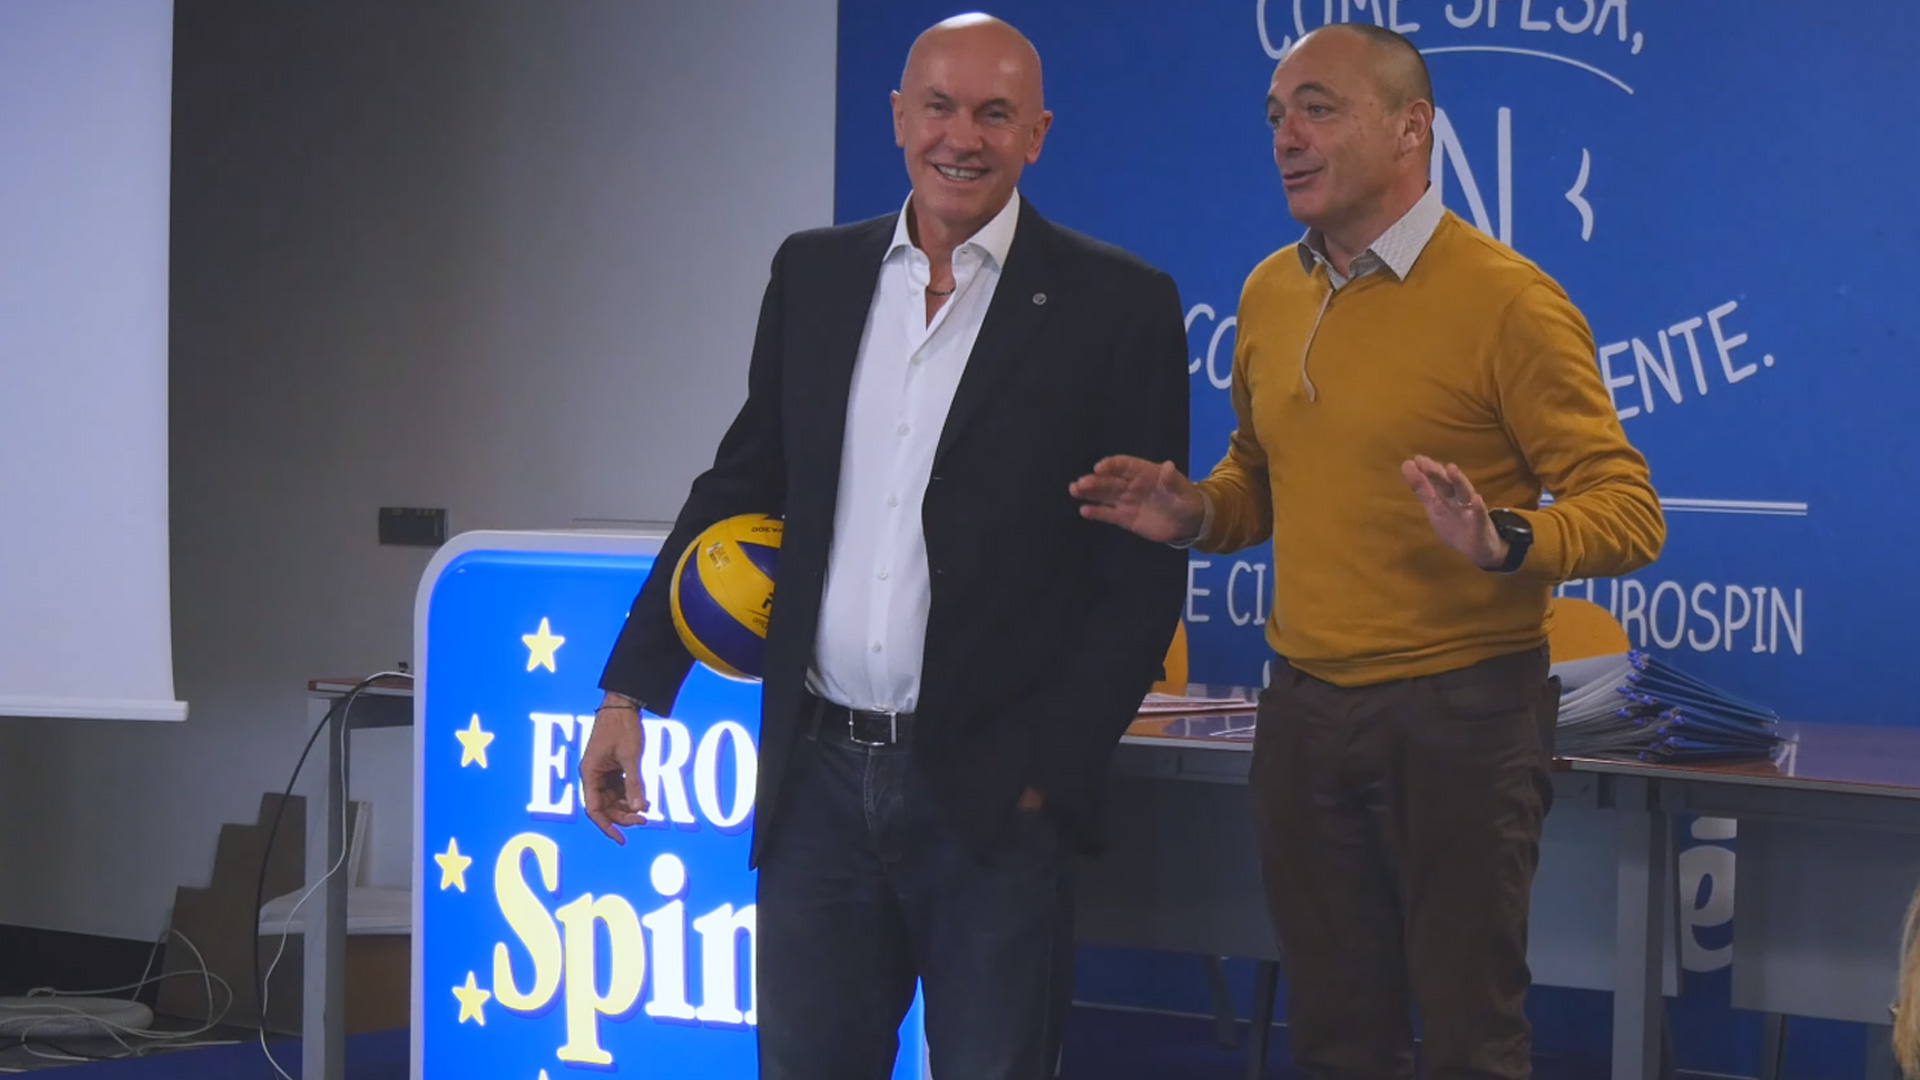 Franco Bertoli <br>Progetto Performance Eurospin